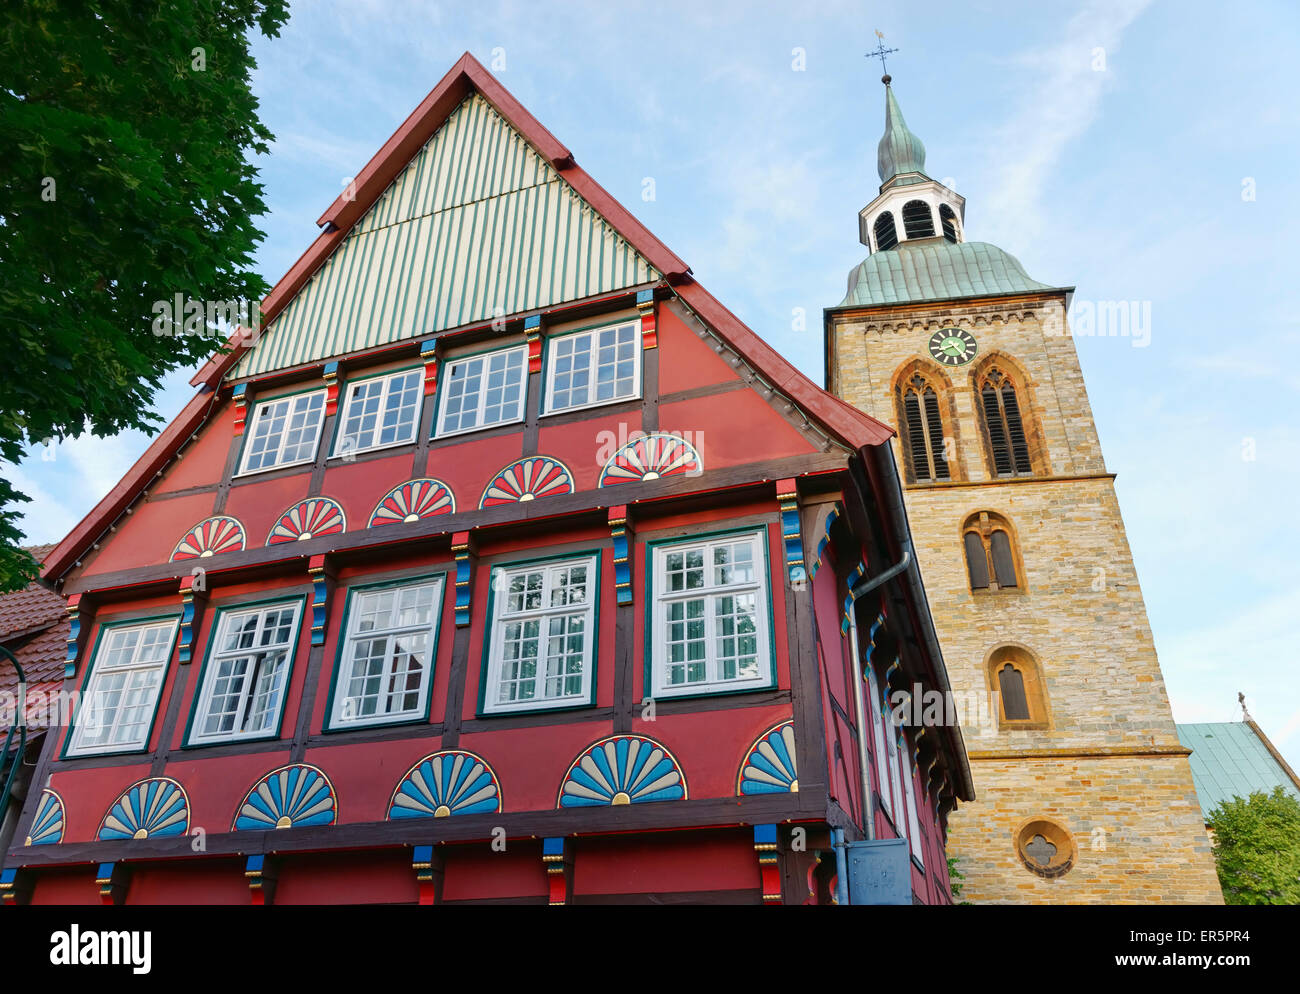 Half-timbered house and Saint Aegidius church, Rheda-Wiedenbrueck, North Rhine-Westphalia, Germany - Stock Image